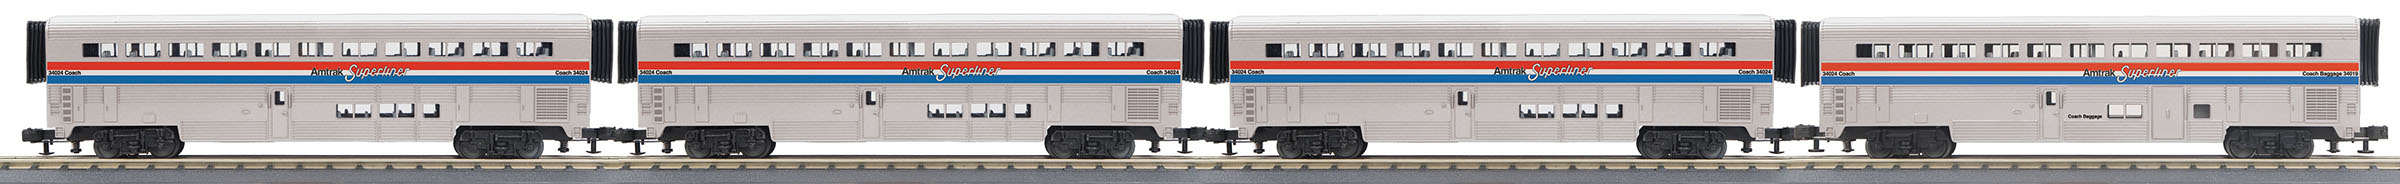 MTH306535 MTH Electric Trains O-31 SuperLiner Set, Amtrak/Phase III #31019 (4)